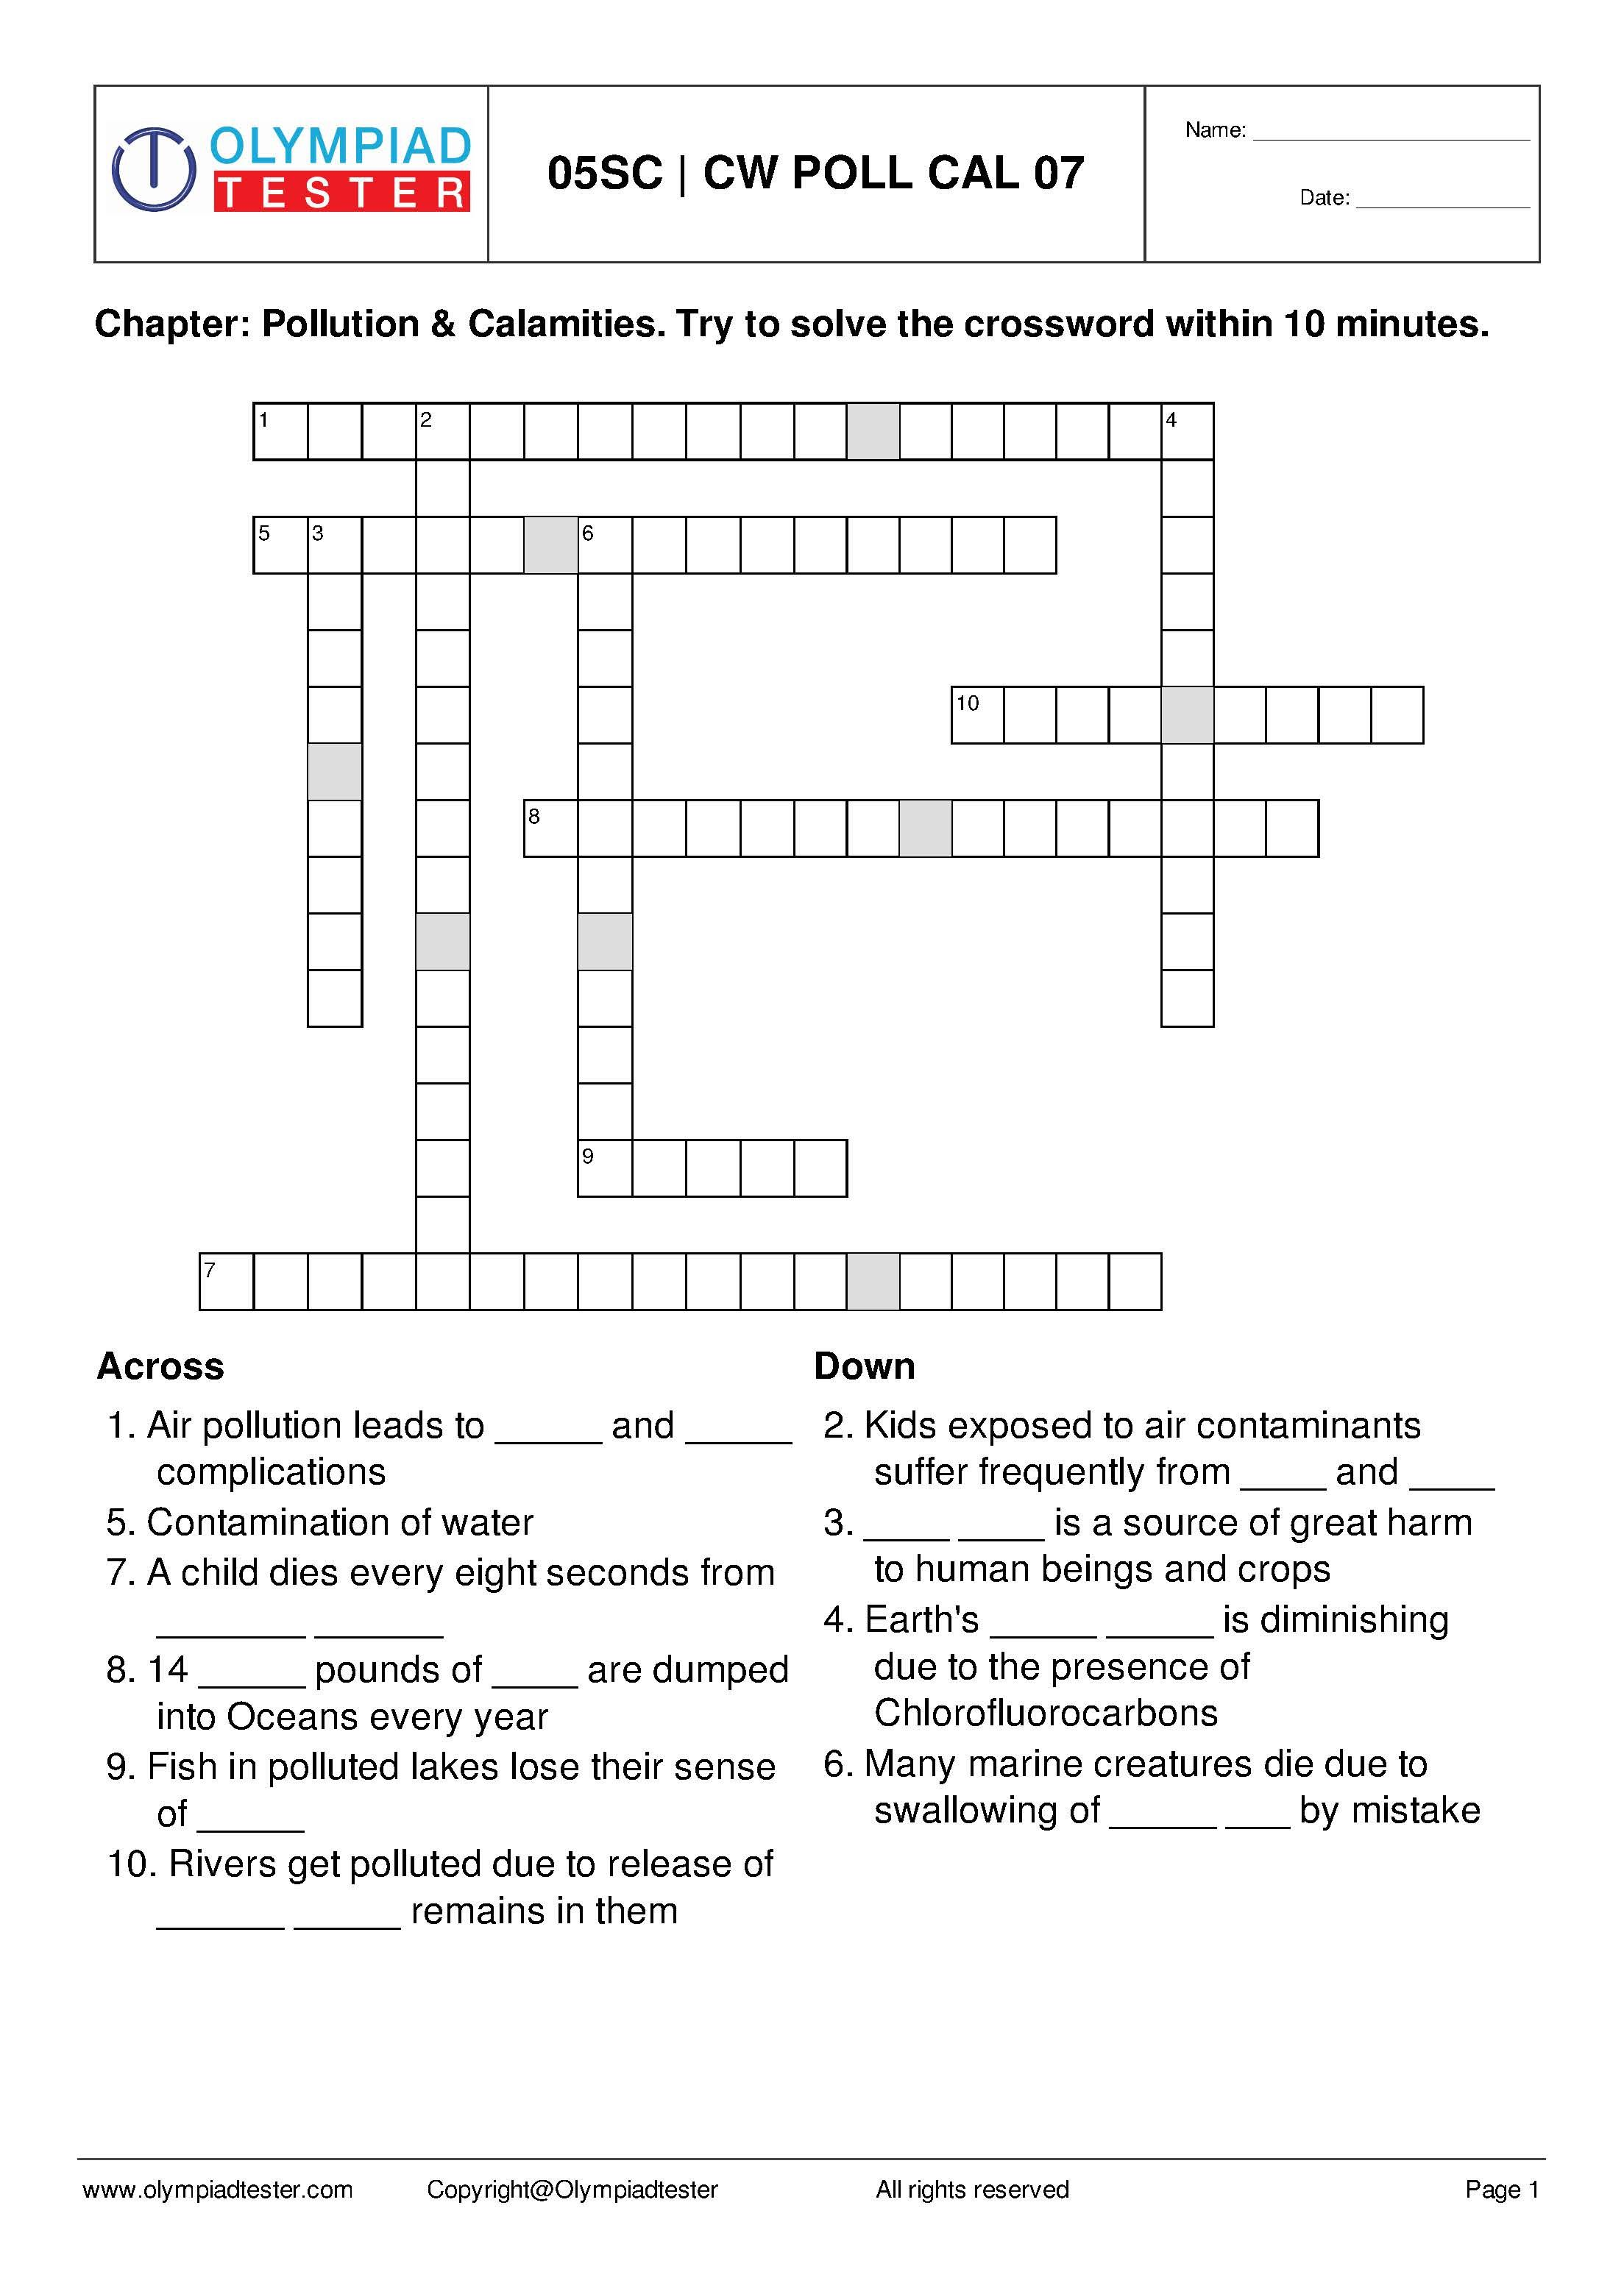 Class 5 Science Crossword Puzzles Pollution And Calamities Crossword Puzzles Crossword Jigsaw Puzzles For Kids